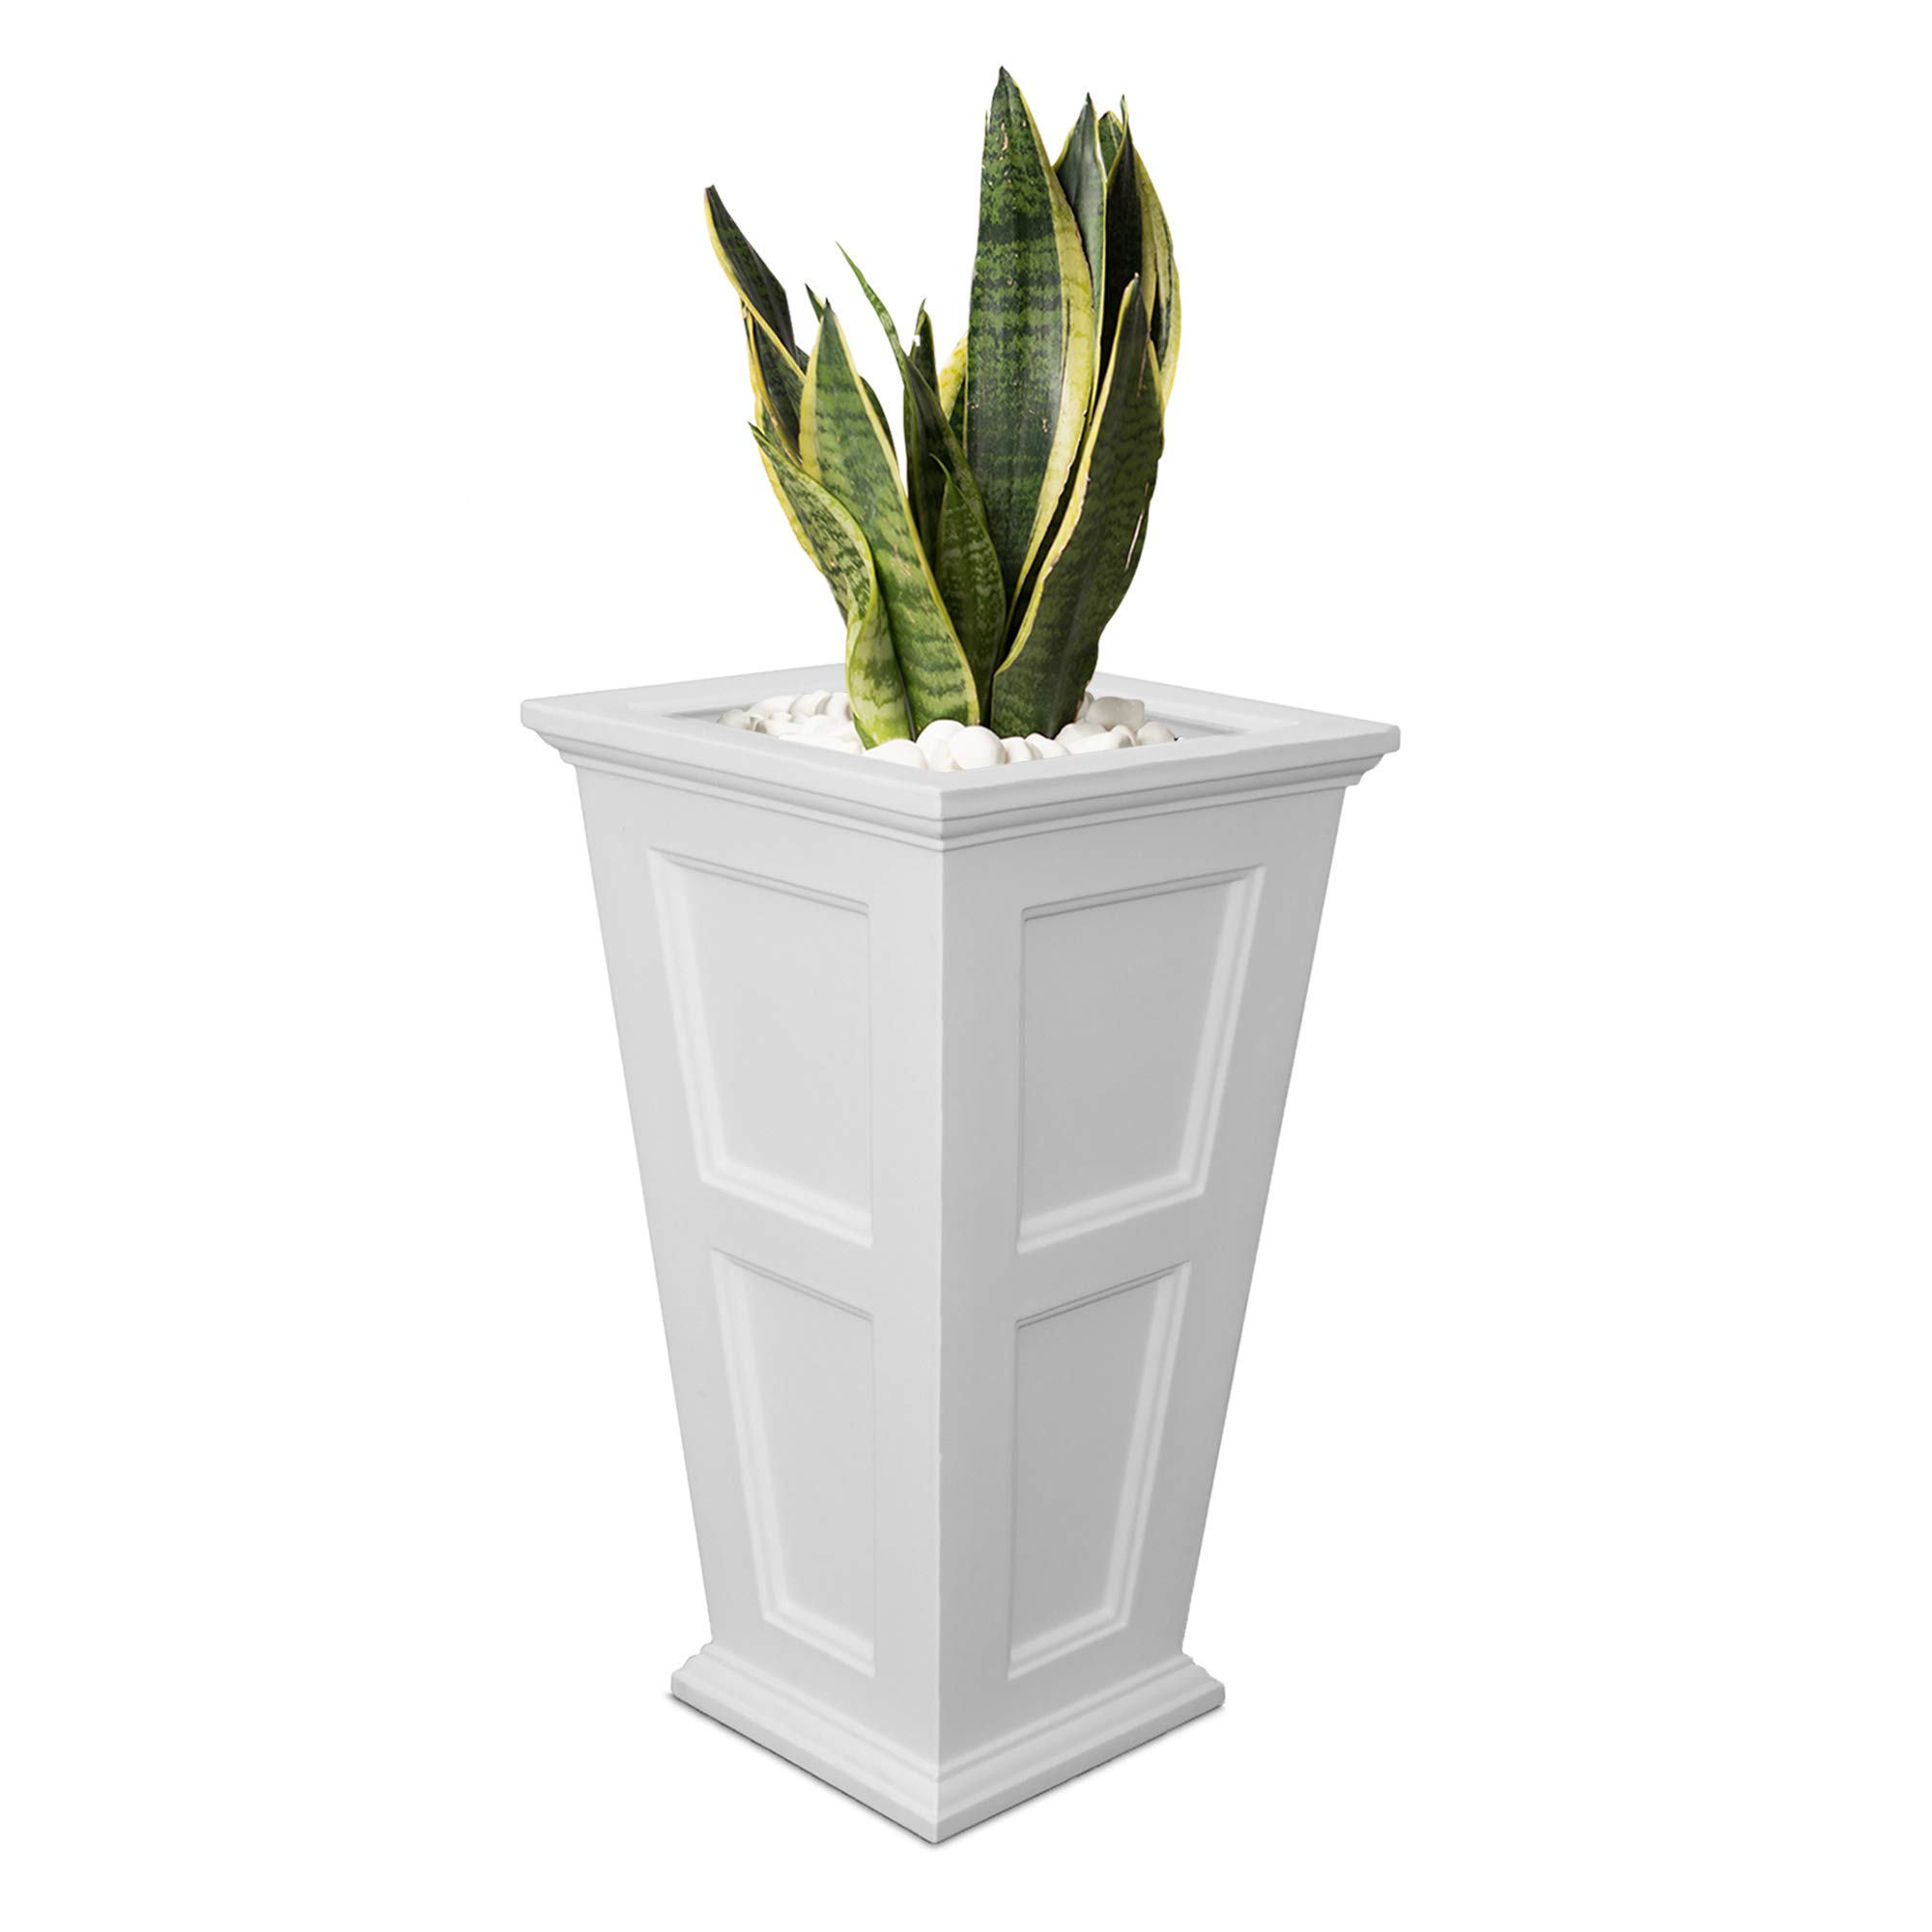 Mayne Fairfield 5829w Tall Planter 28 Inch By 16 Inch By 16 Inch White Buy Online In Saint Lucia At Saintlucia Desertcart Com Productid 12175745